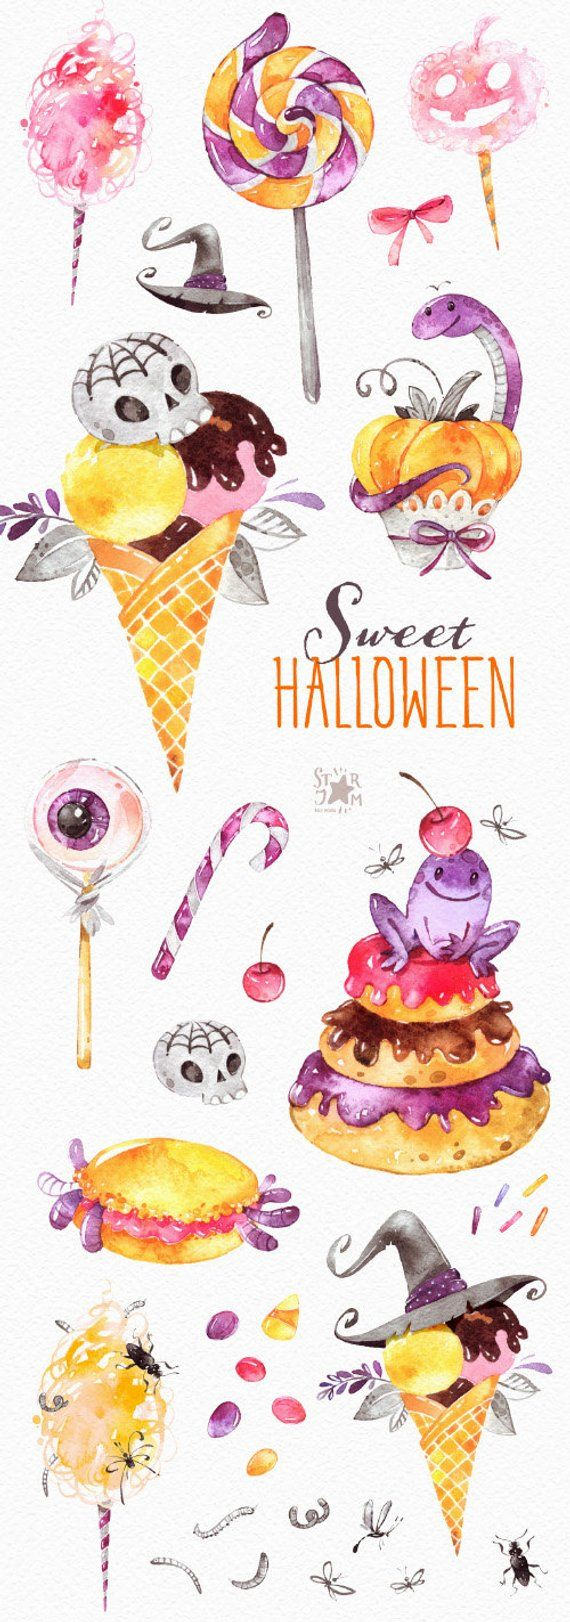 watercolor clipart candy ice cream lollipops cotton candy cake macaroon skul [ 570 x 1622 Pixel ]